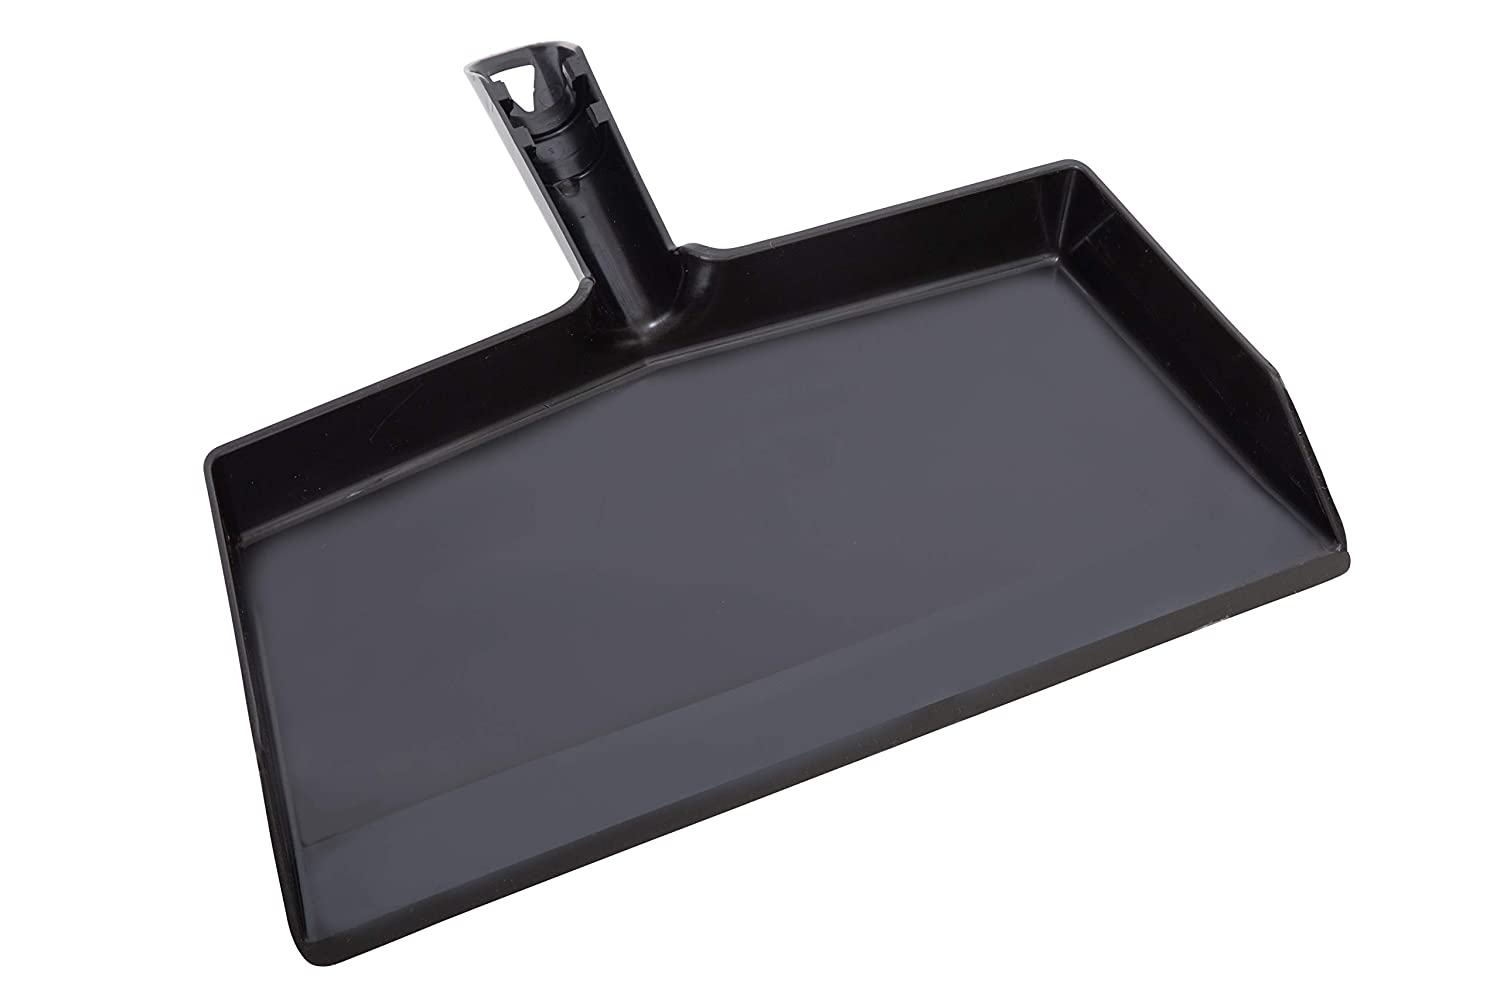 Fuller Brush Black Clip-On Dustpan - Heavy Duty Plastic Clip On Dust Pan w/Wide Sweep Opening & Easy Grip Handle - Home & Commercial Dusting & Cleaning Tool